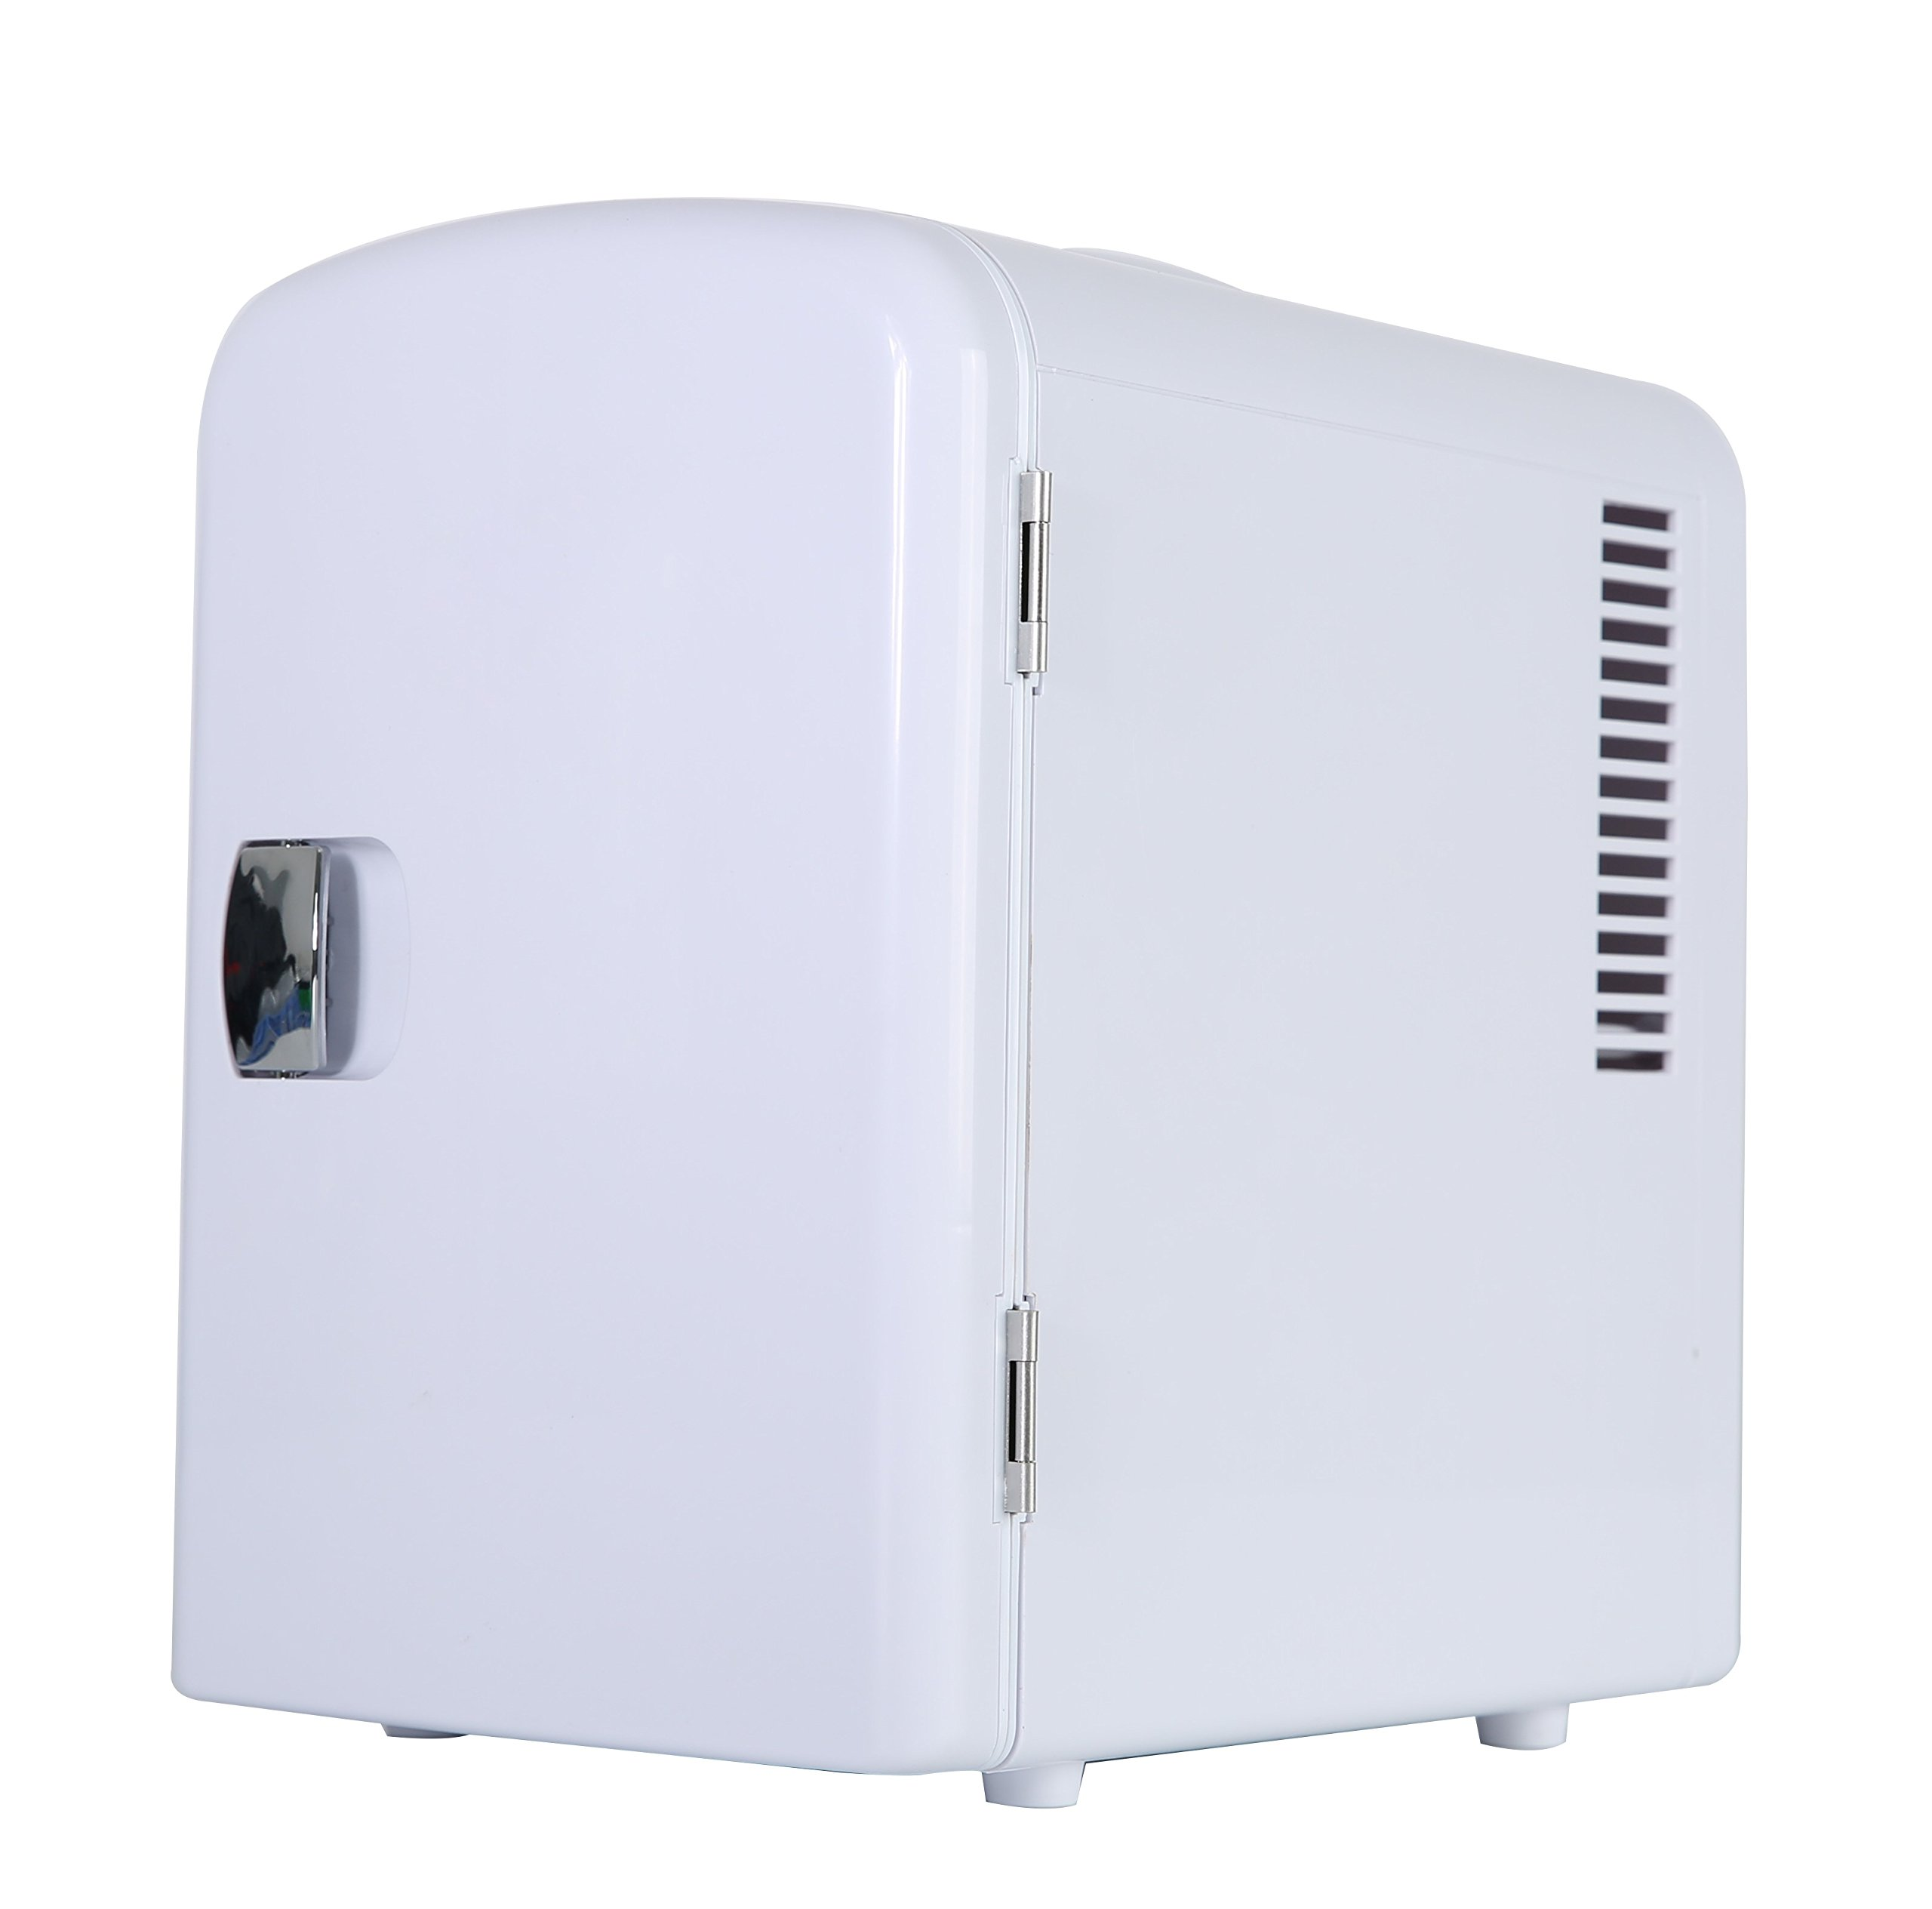 Portable 6 Can Mini Fridge Cooler - Home,Office, Car or Boat - AC & DC - White - 110/120V